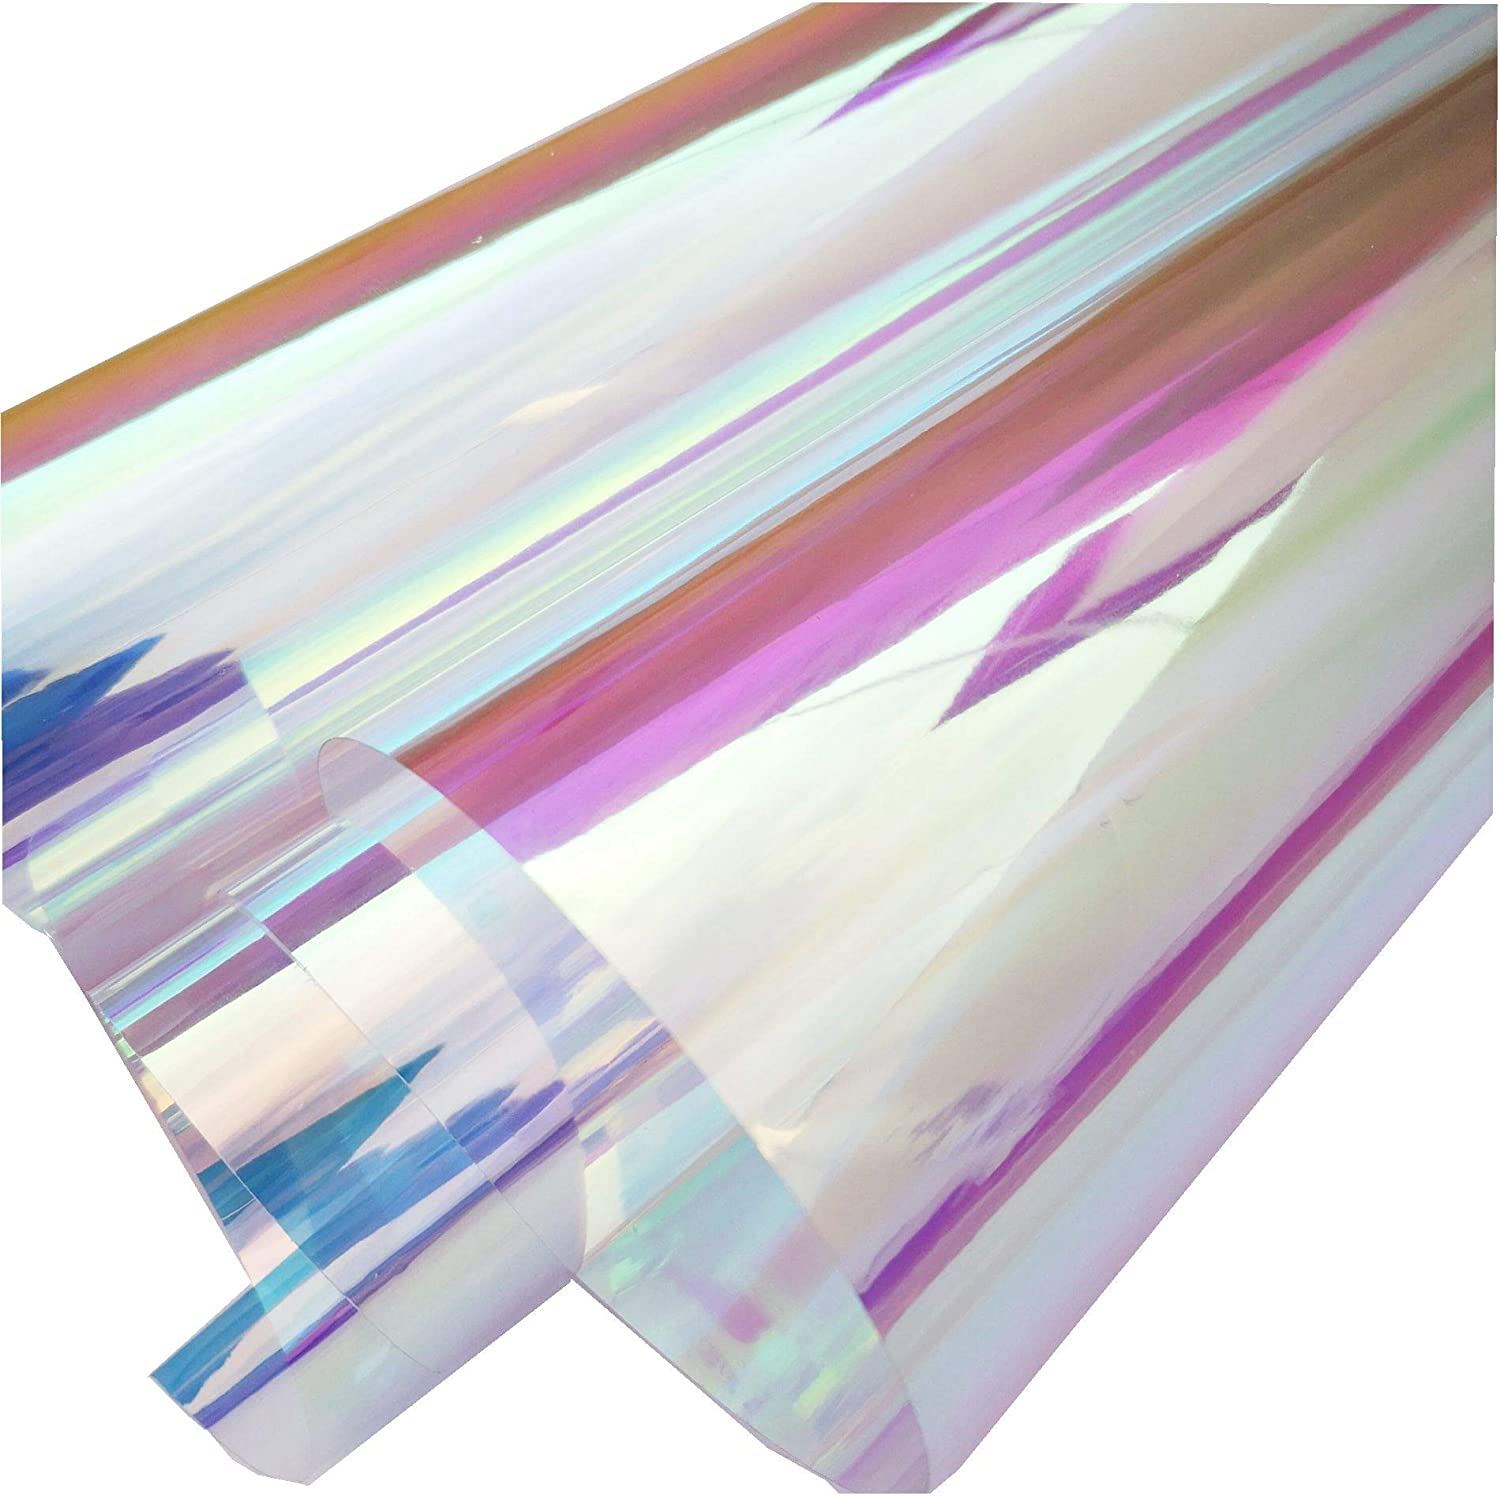 Transparent Iridescent Pvc Sheet Cosplay Performance Accessories Holographic Waterproof Synthetic Leather For Party Decoration 0 1mm Thick 11 8x47 Amazon Ca Generic